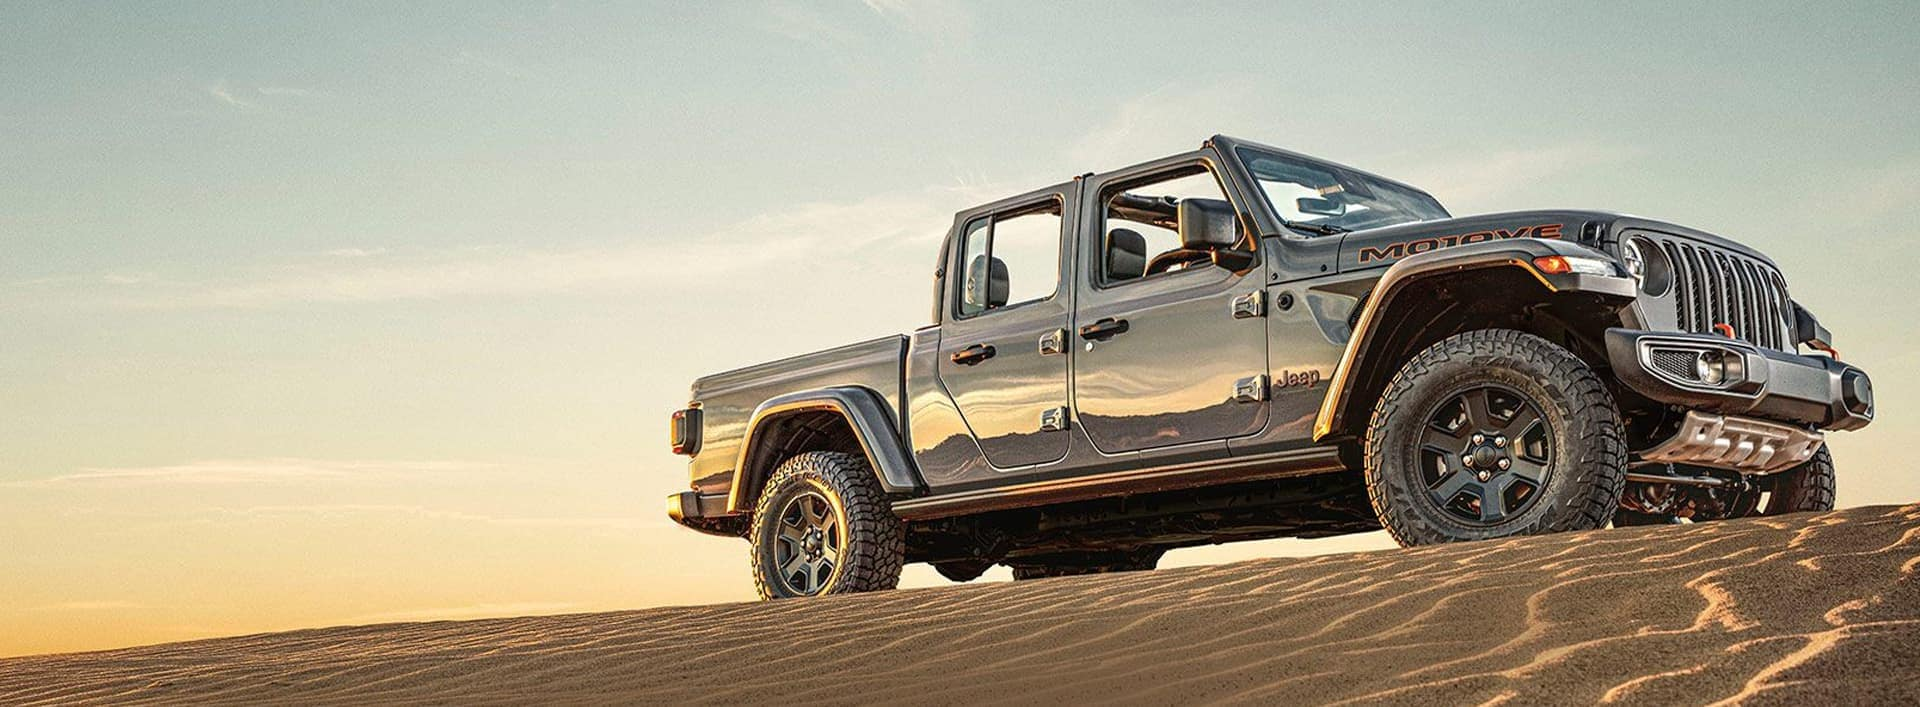 Jeep Gladiator sitting on top of a sand dune